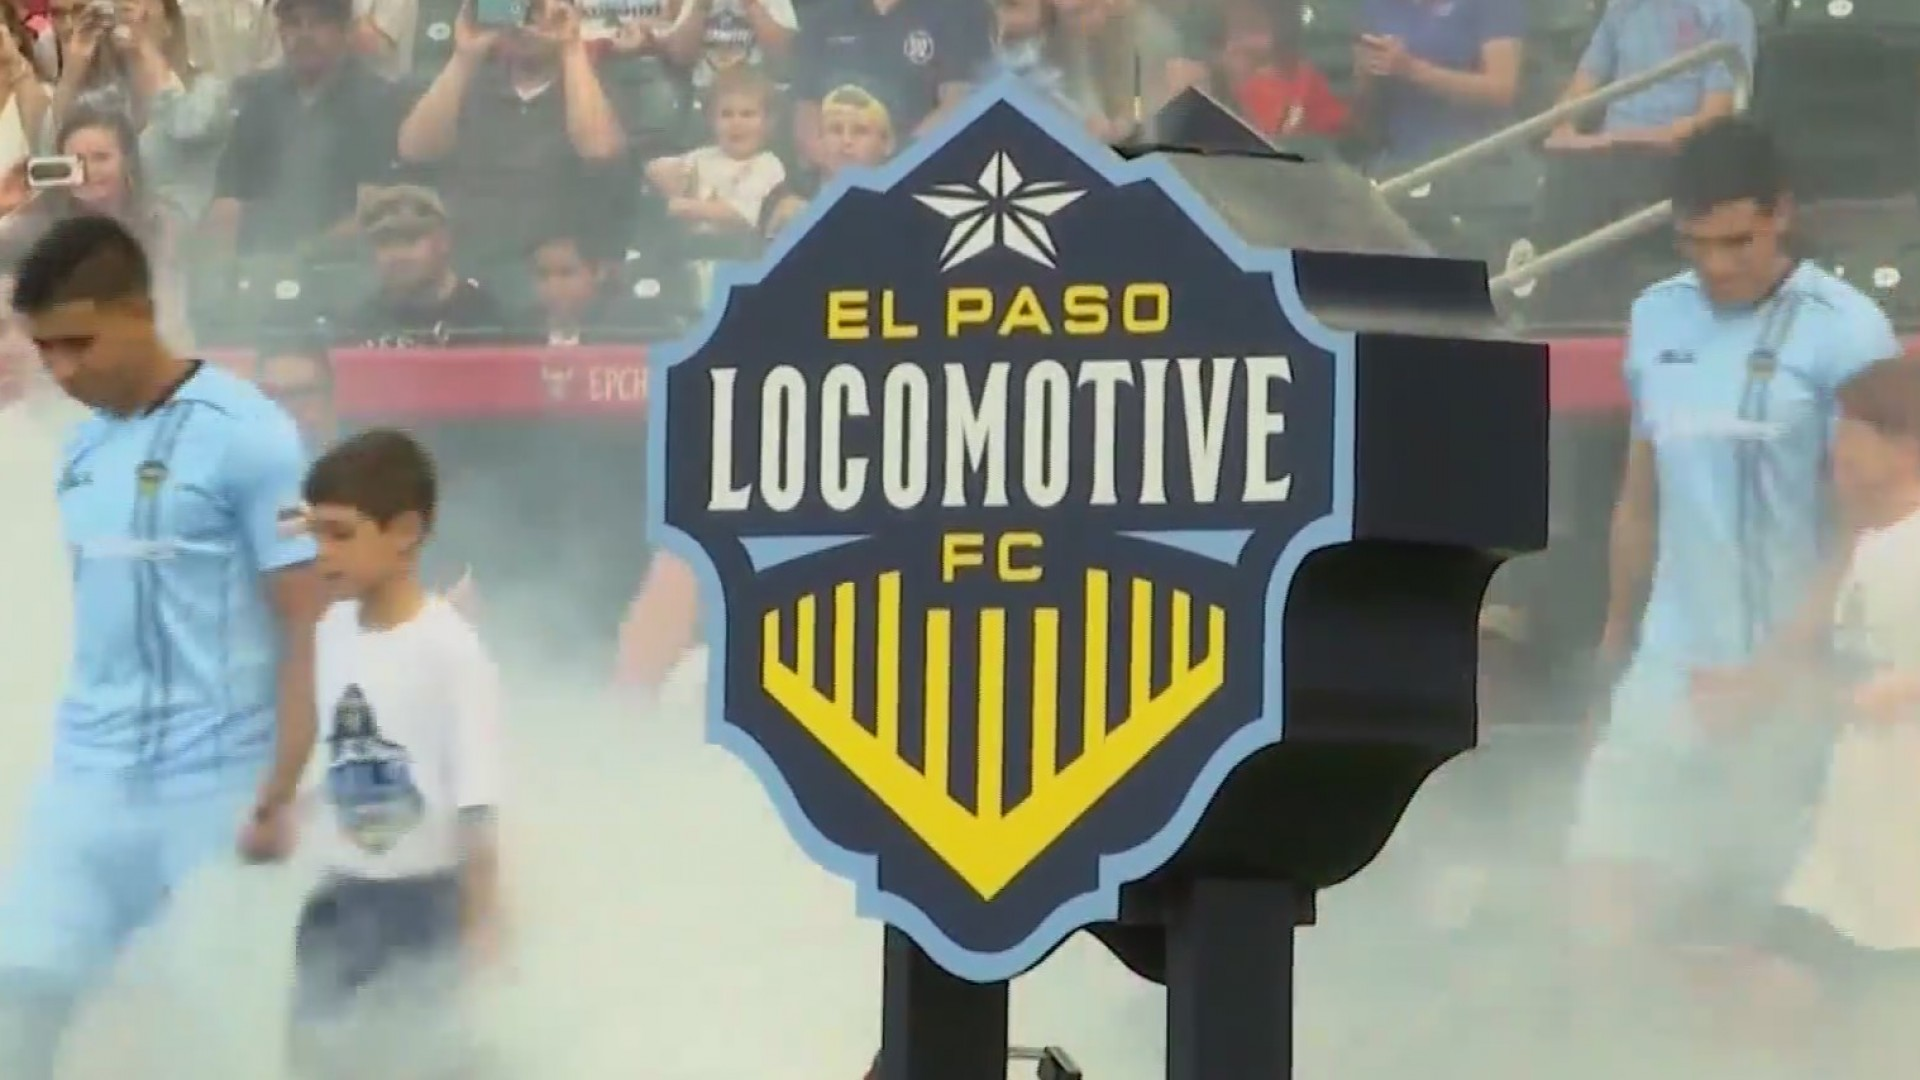 Locomotive_FC_climbing_in_the_standings_0_20190612050945